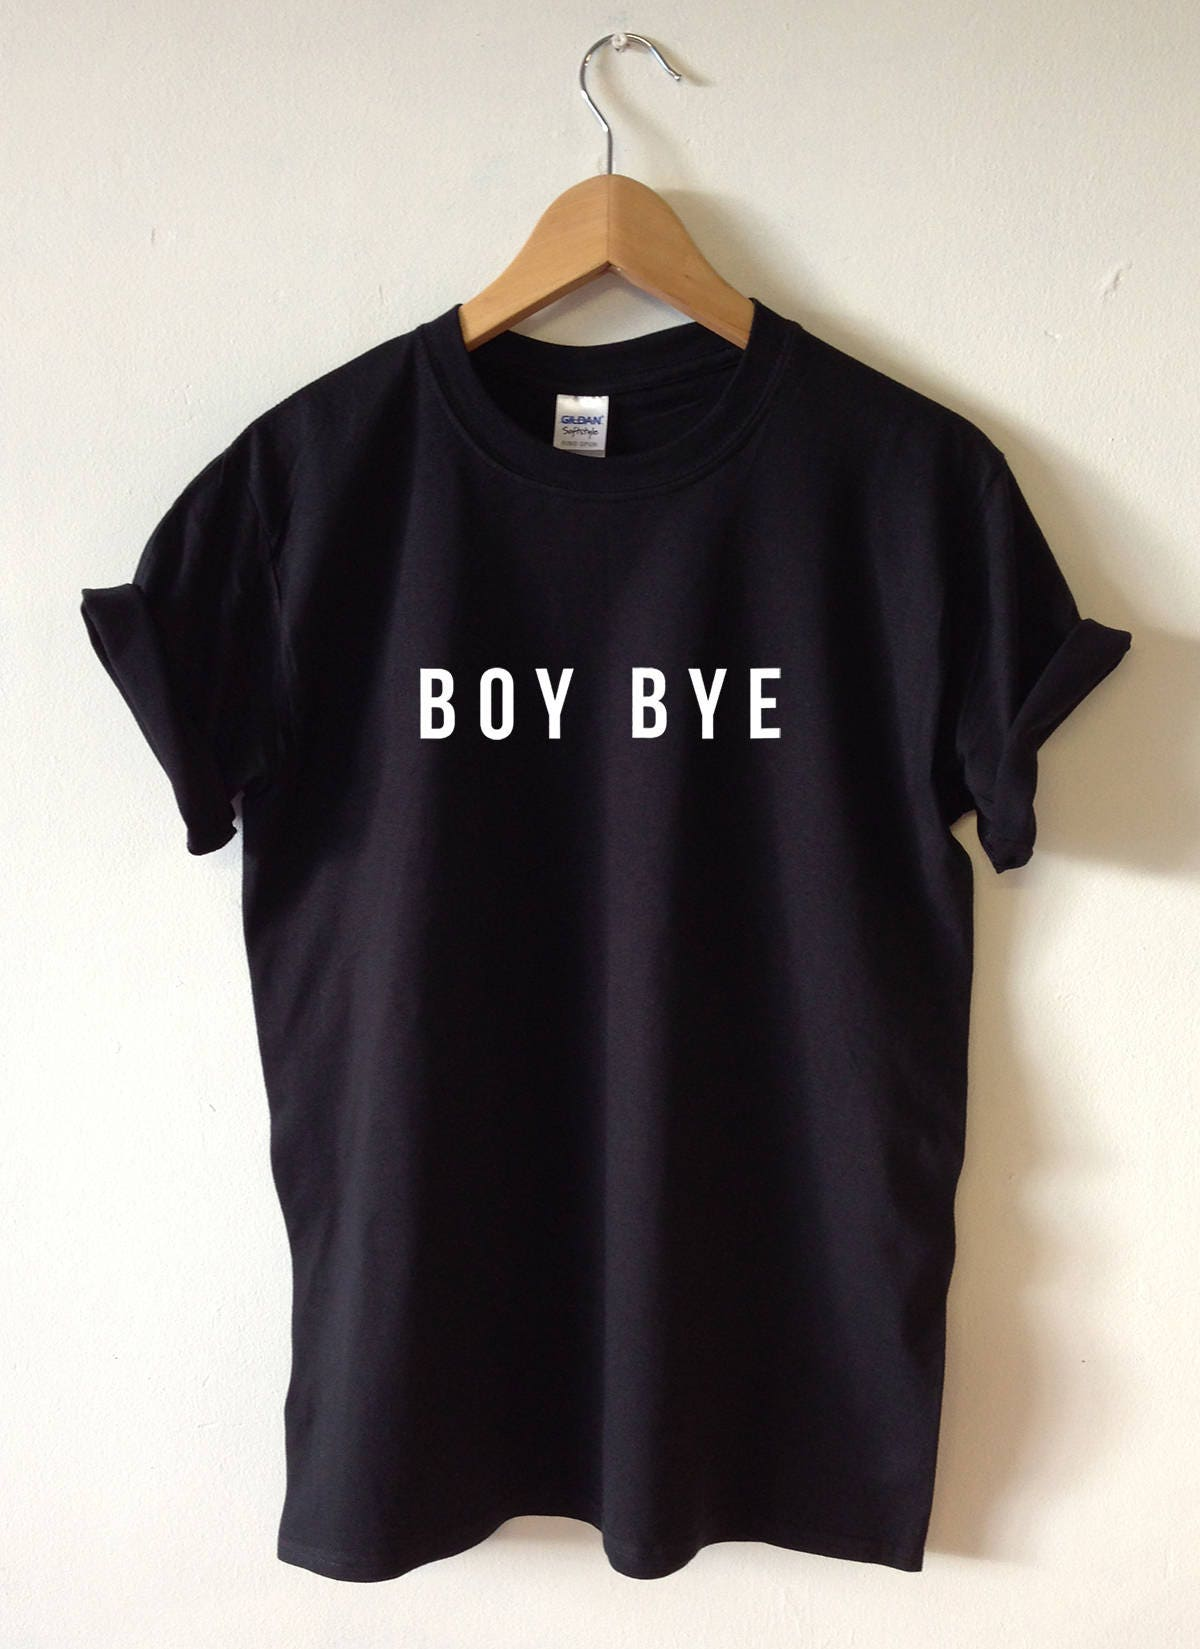 Design your own t-shirt calgary - Boy Bye T Shirt Tee Shirt Top Lemonade Ashes To Ashes High Quality Screen Print Super Soft Unisex Worldwide Ship Hipster Brand New